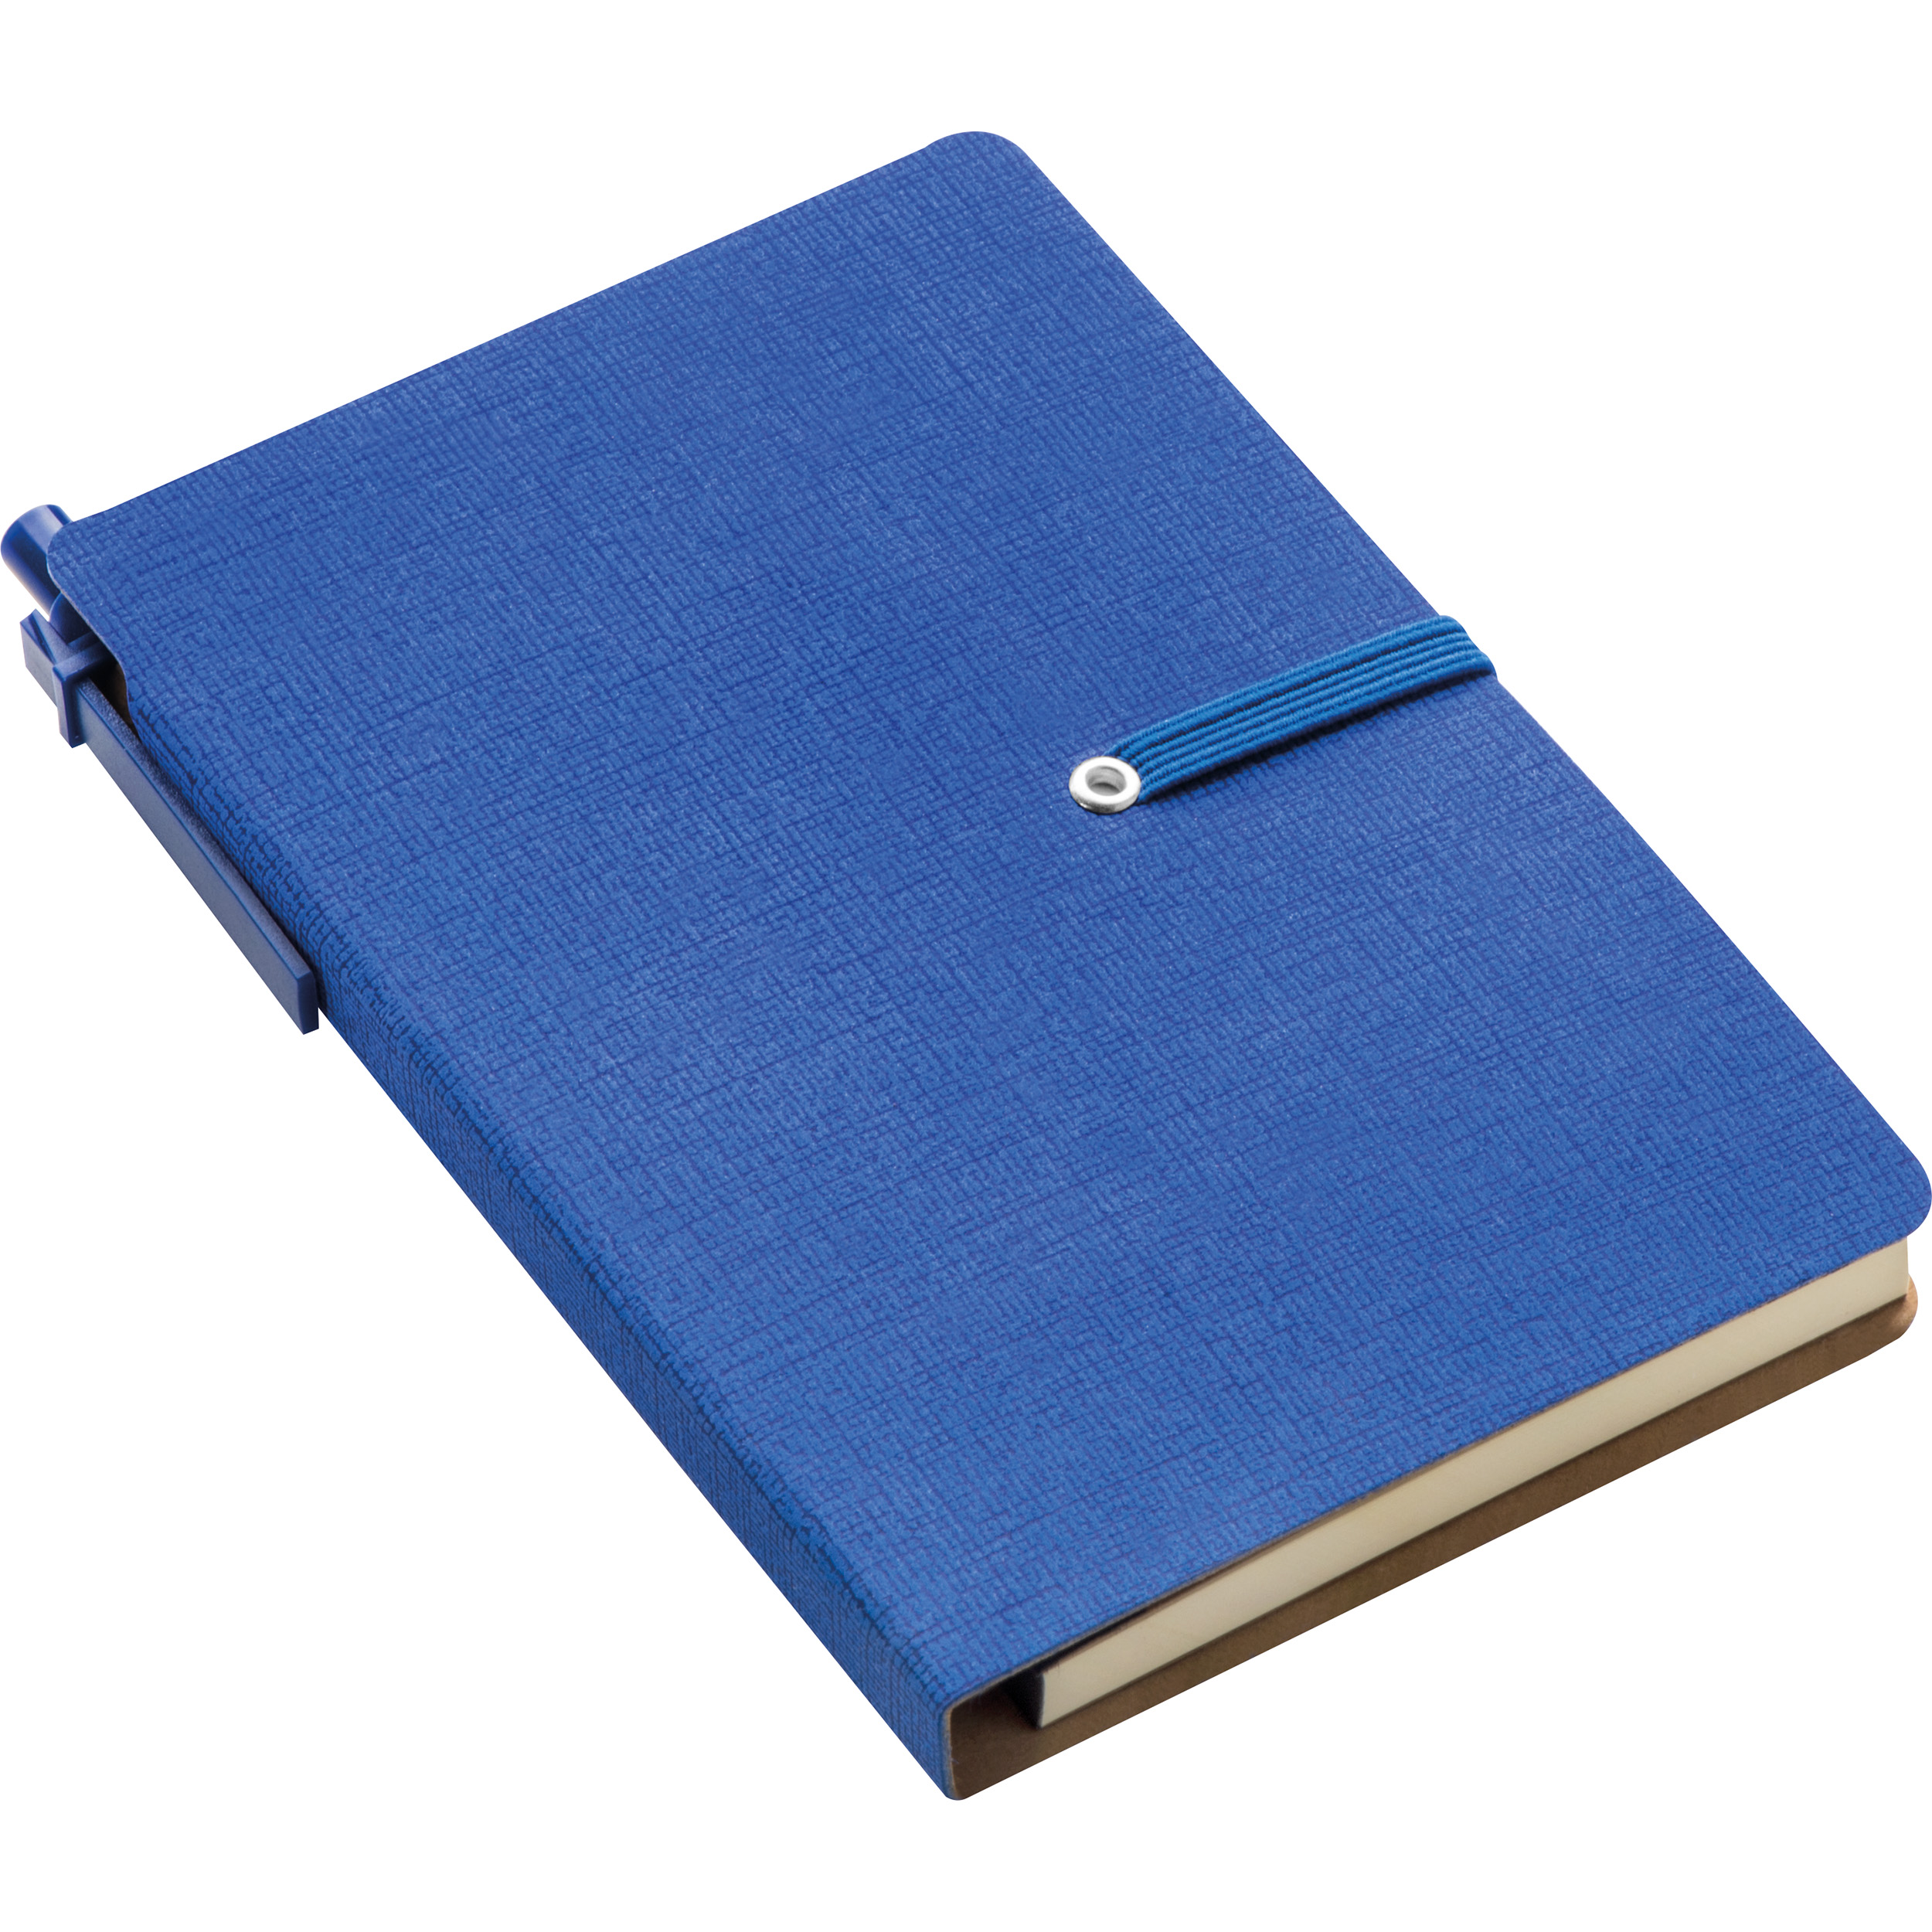 Notebook with sticky markers